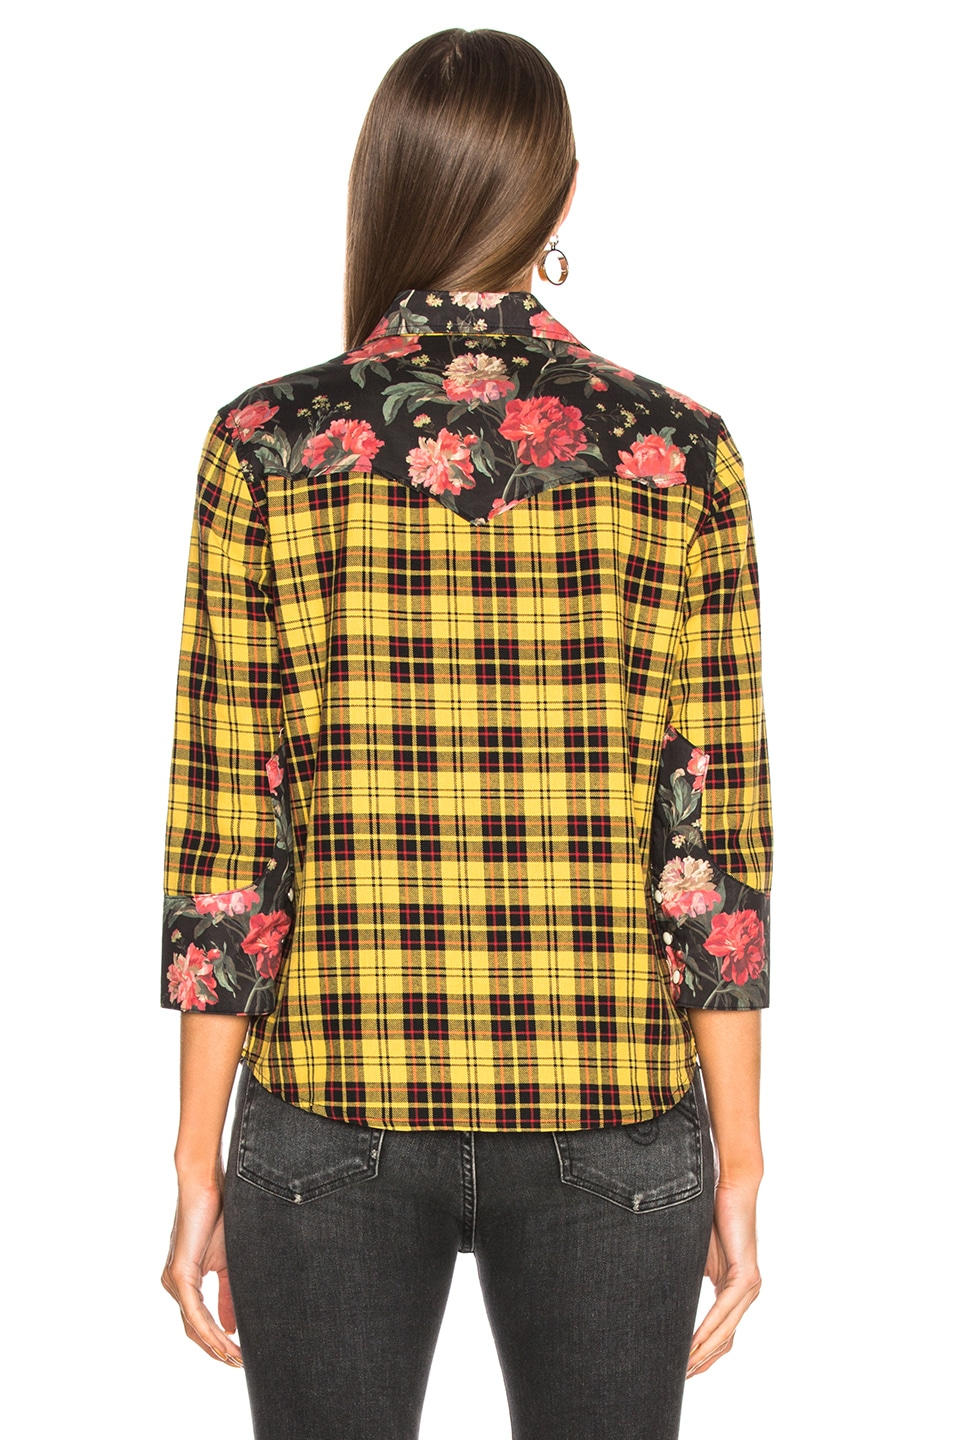 Image 3 of R13 Exaggerated Collar Cowboy Shirt in Yellow & Black Floral